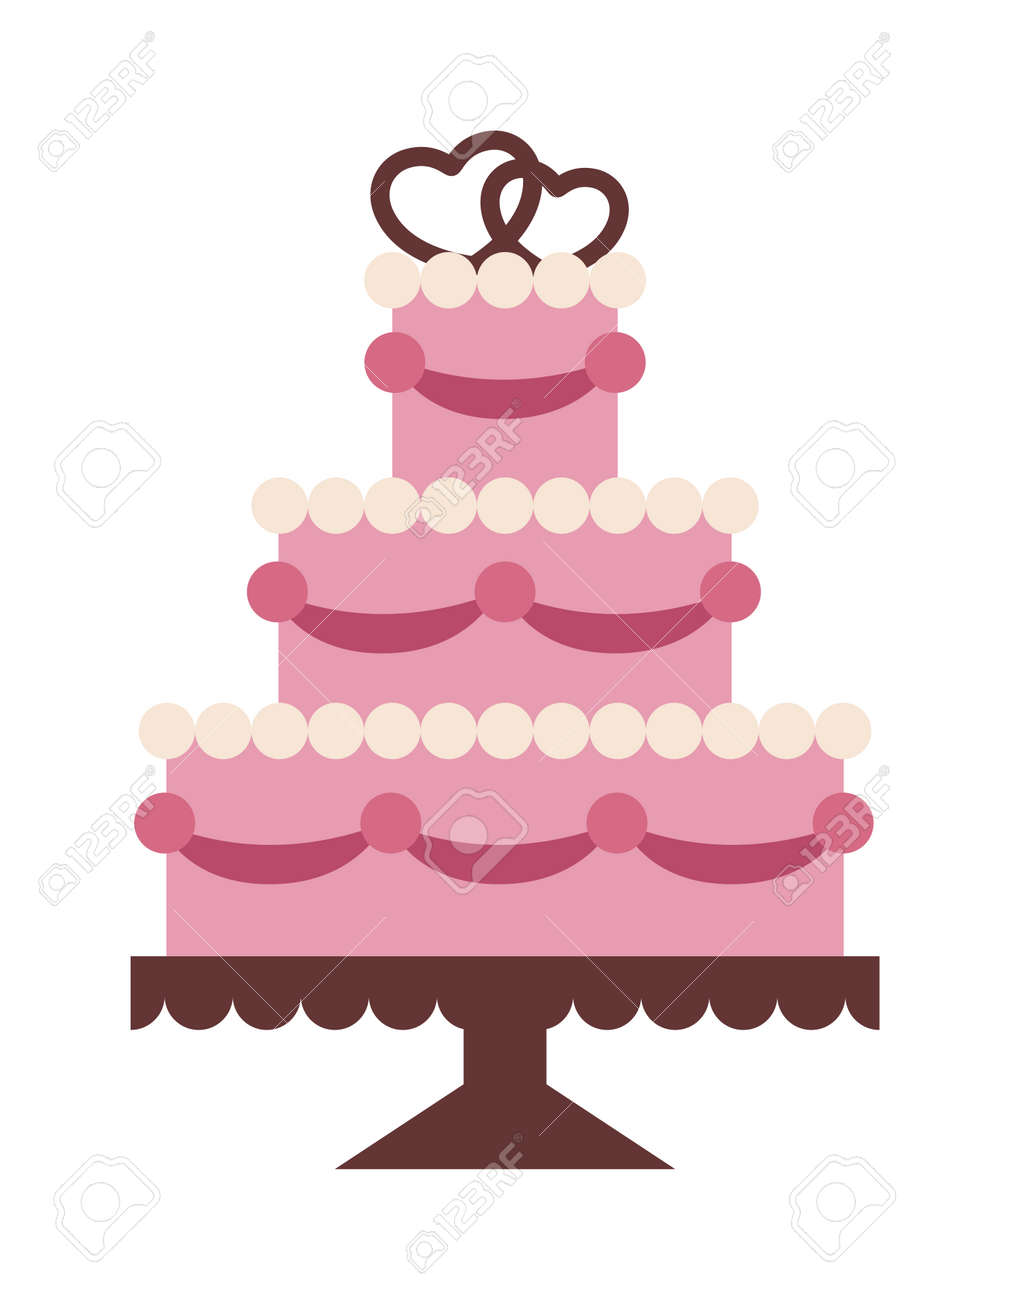 Wedding Cake Isolated On Background Wedding Cake Vector Illustration Royalty Free Cliparts Vectors And Stock Illustration Image 54589248